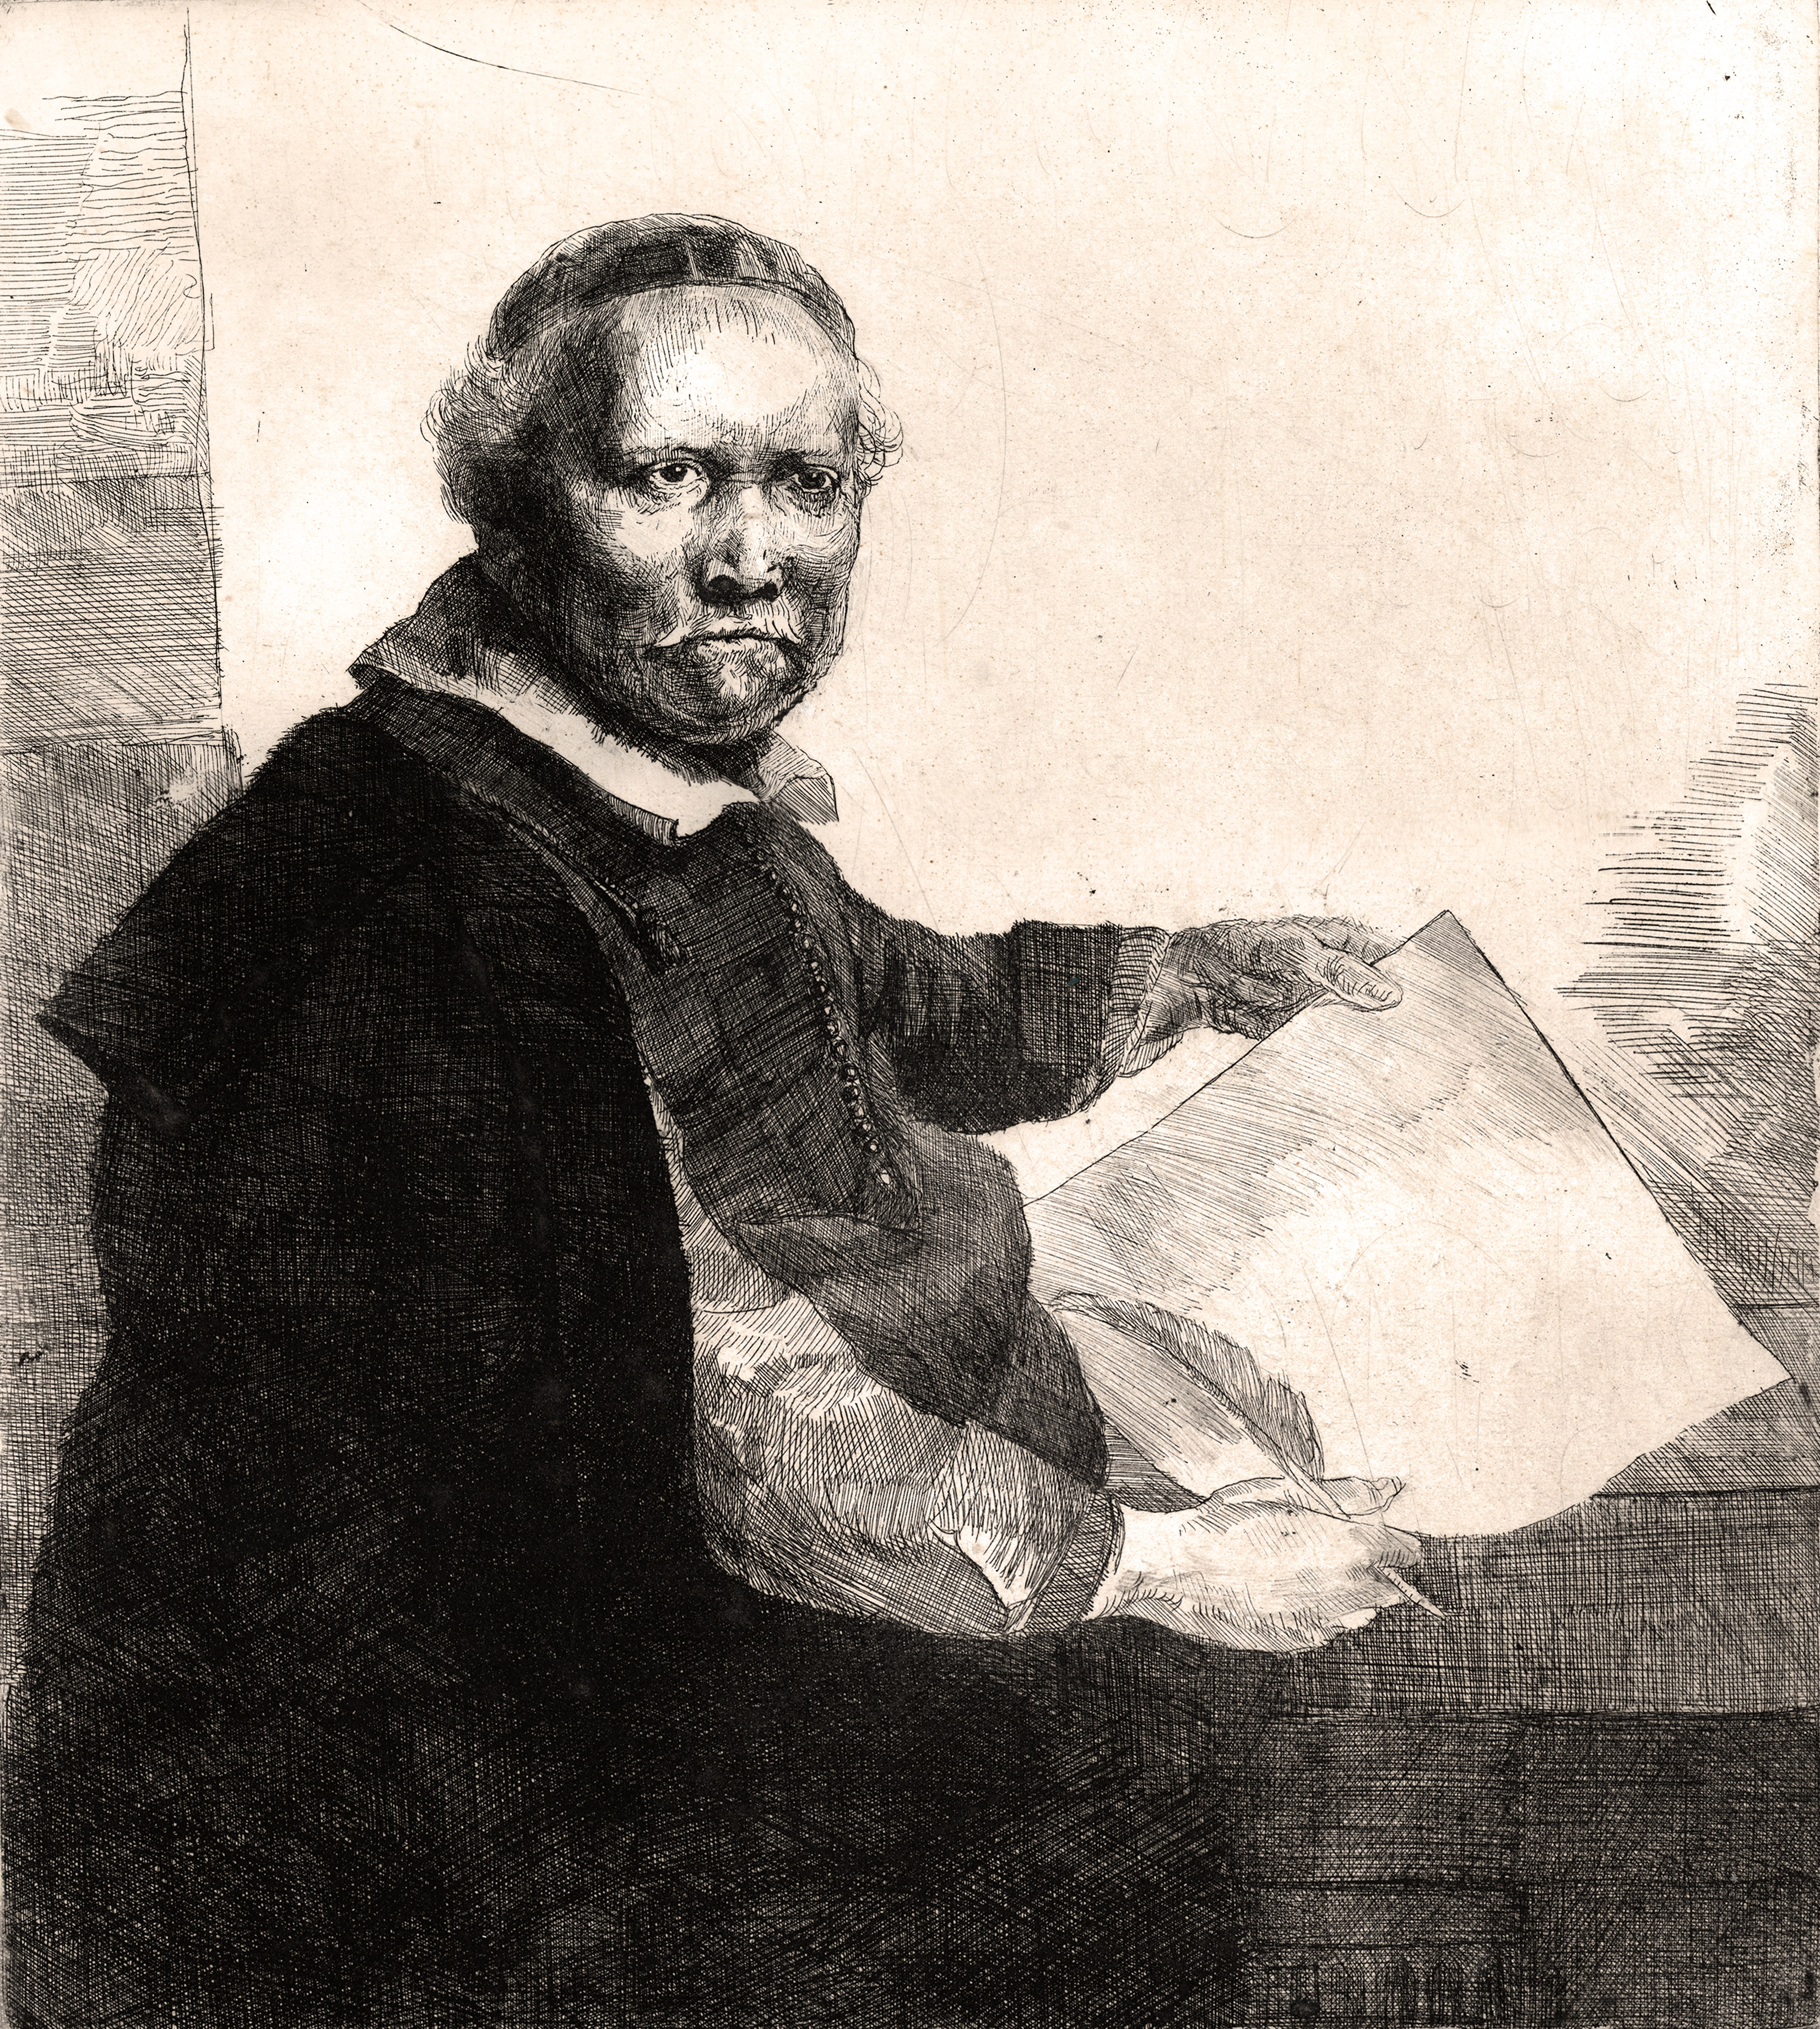 Replica of an etching by Rembrandt